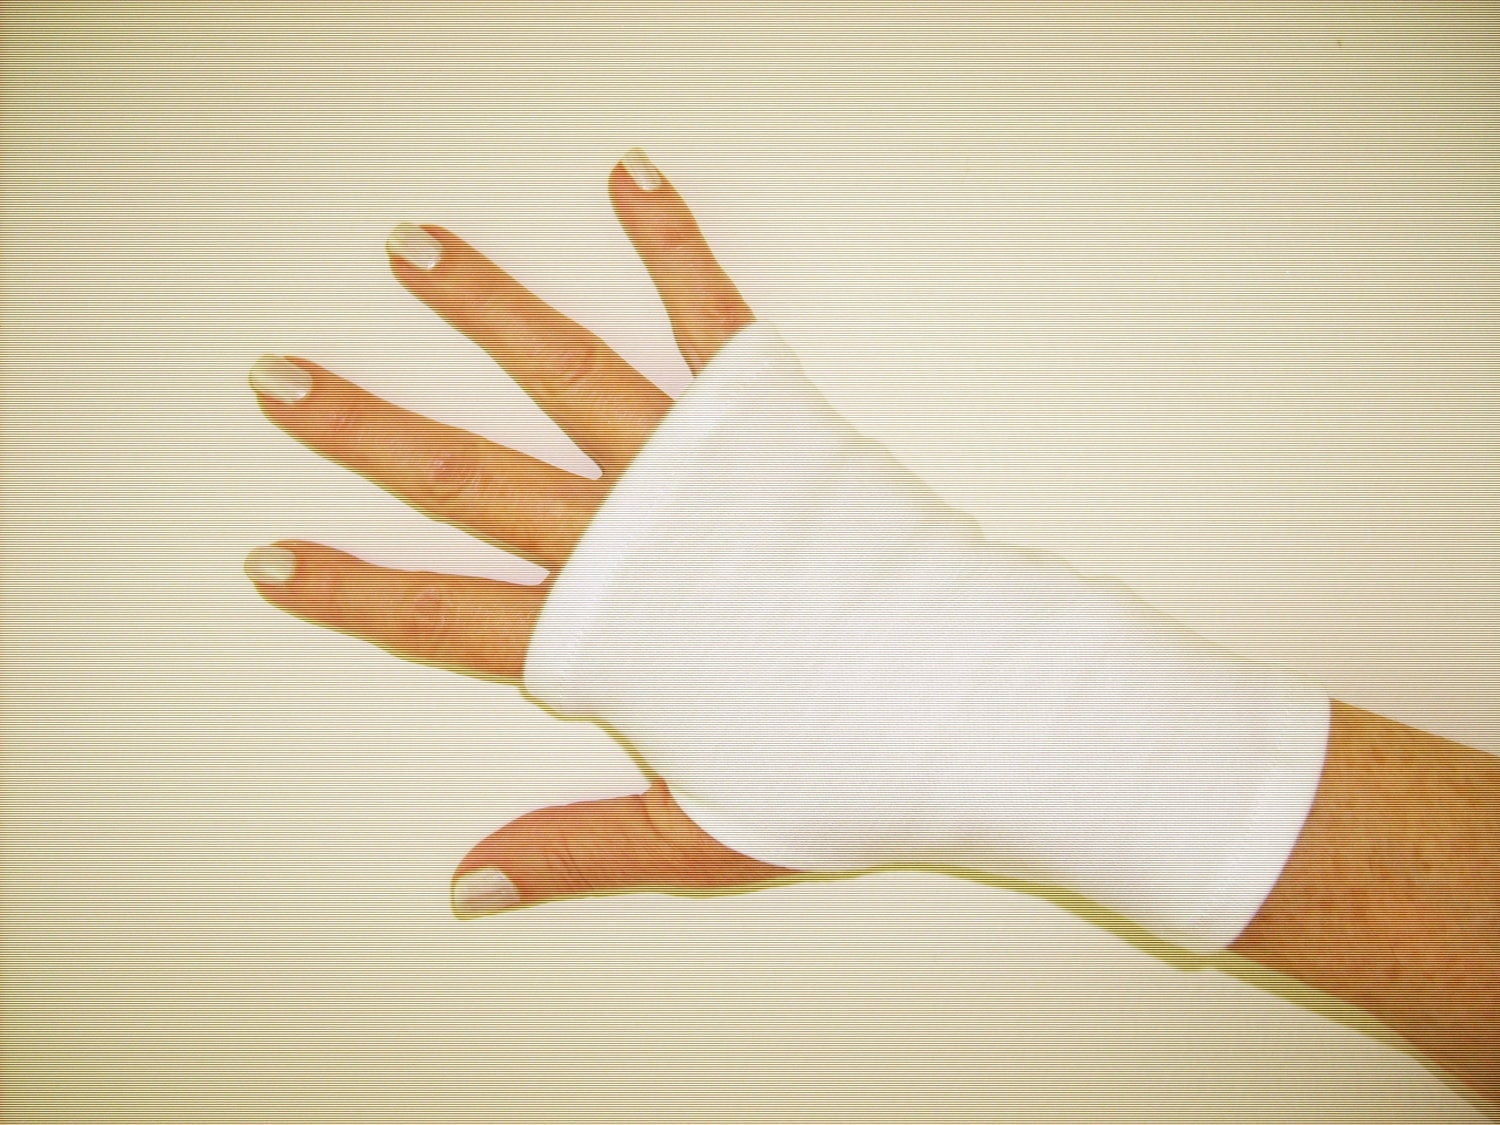 Fingerless Gloves Spf 50 Cotton Stretch One Size Fits All